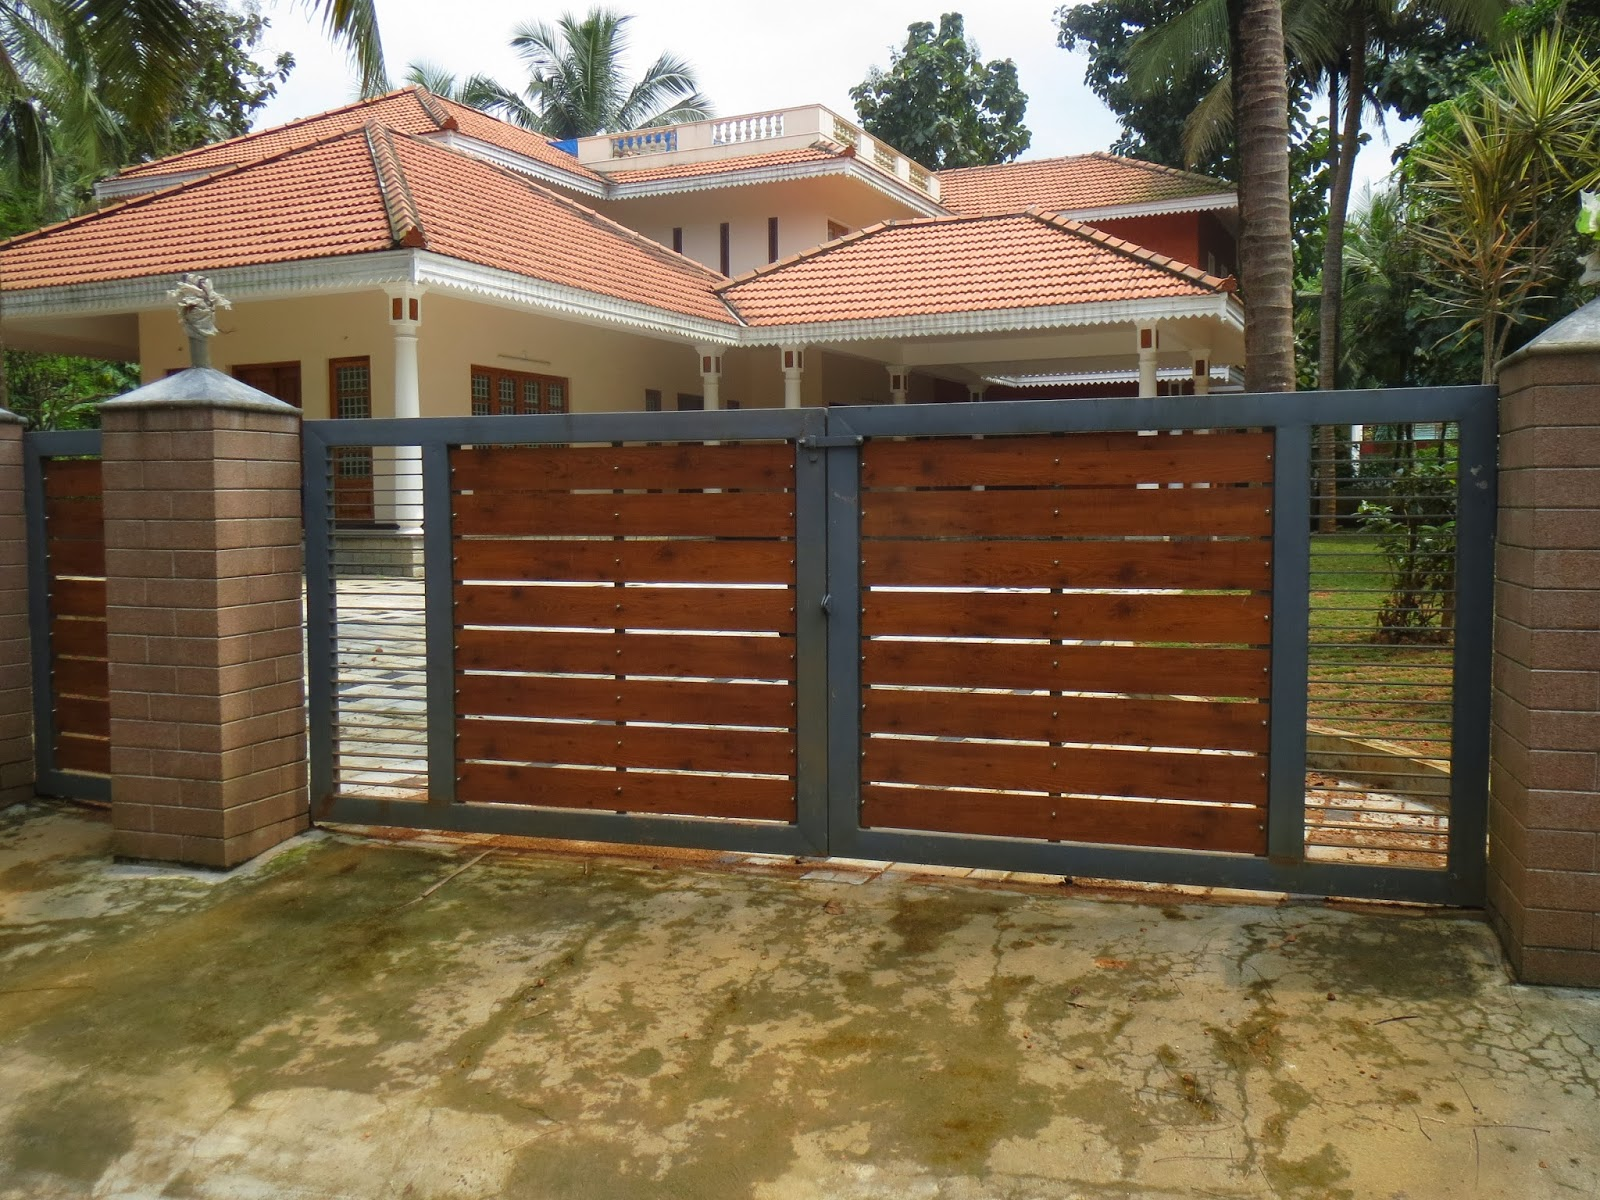 Kerala gate designs house gates in kerala india for Home gate architecture